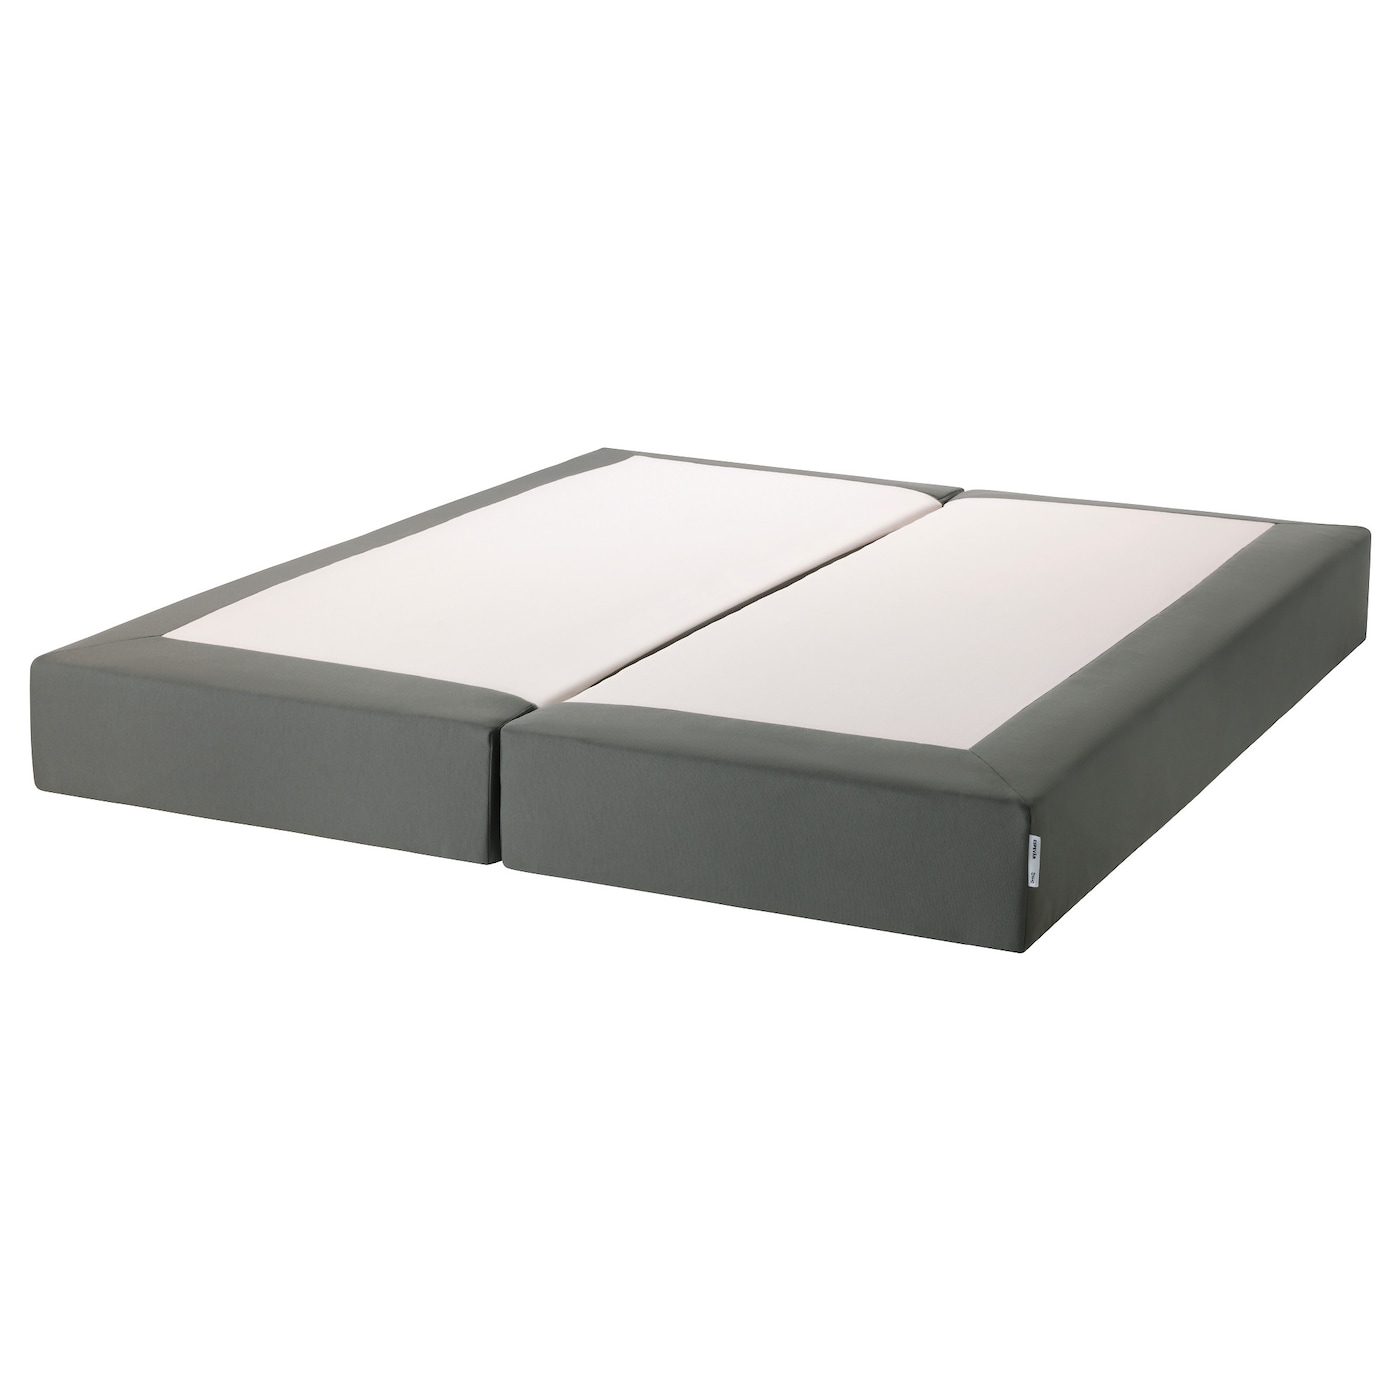 hamarvik matelas ressorts ferme beige fonc 180x200 cm ikea. Black Bedroom Furniture Sets. Home Design Ideas